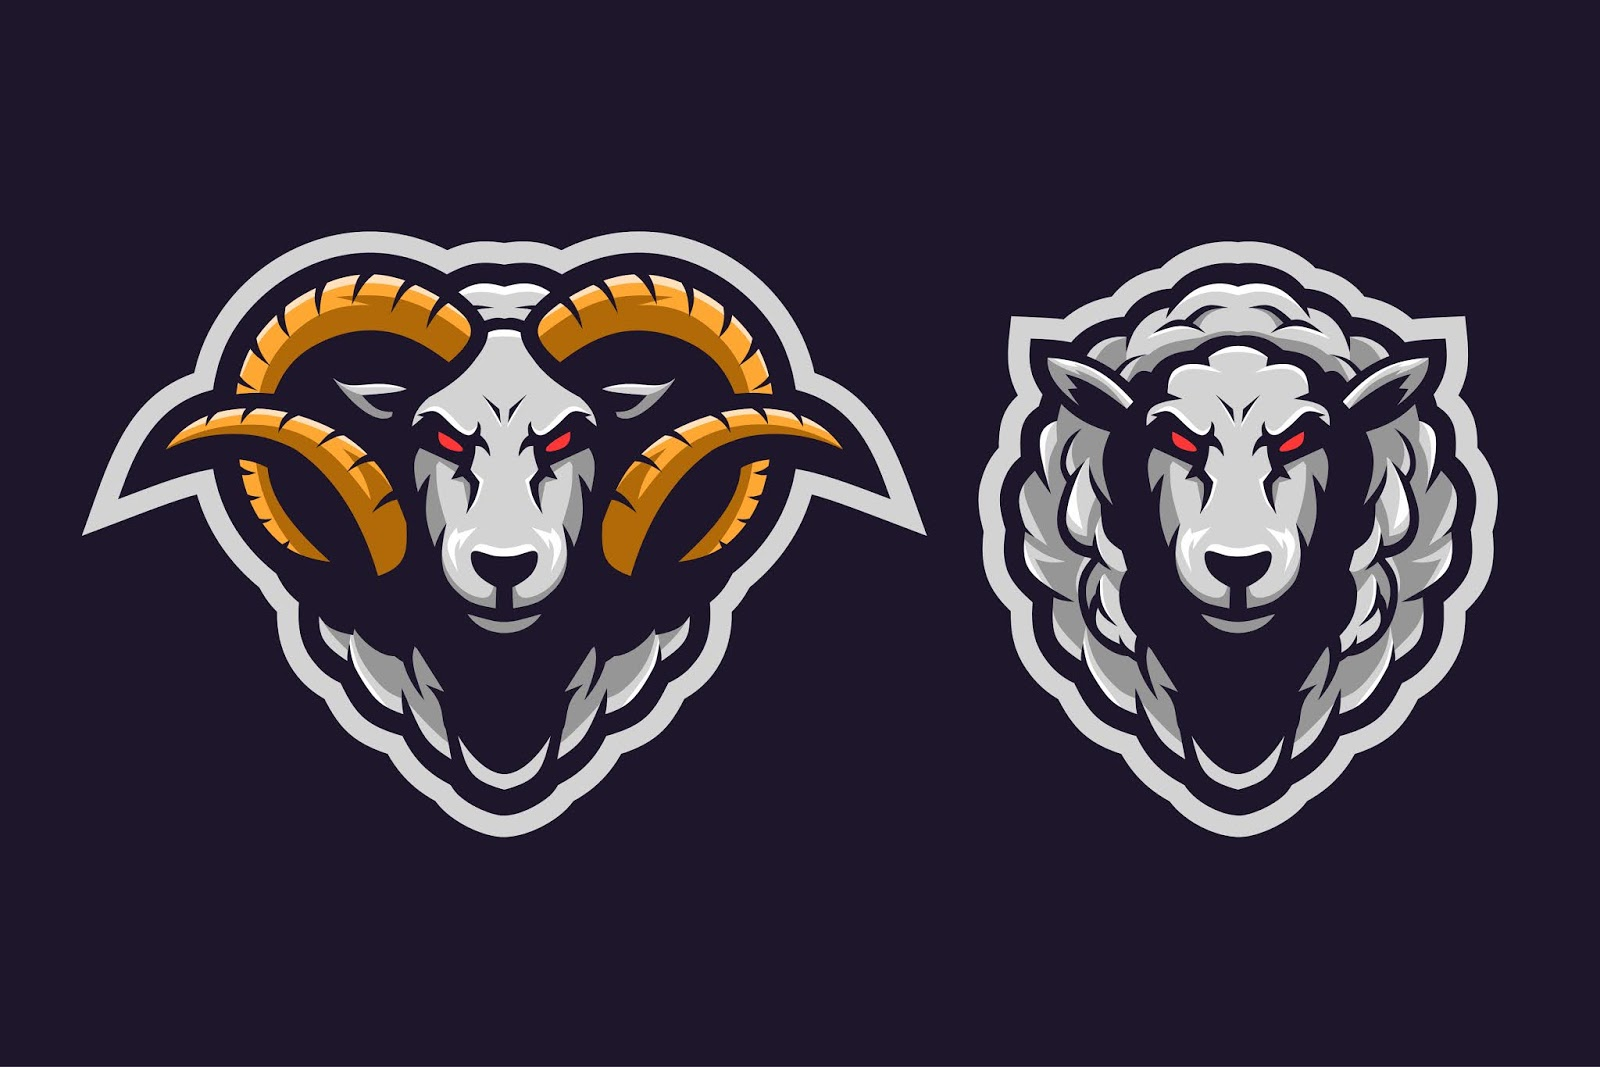 Sheep Mascot Logo Free Download Vector CDR, AI, EPS and PNG Formats